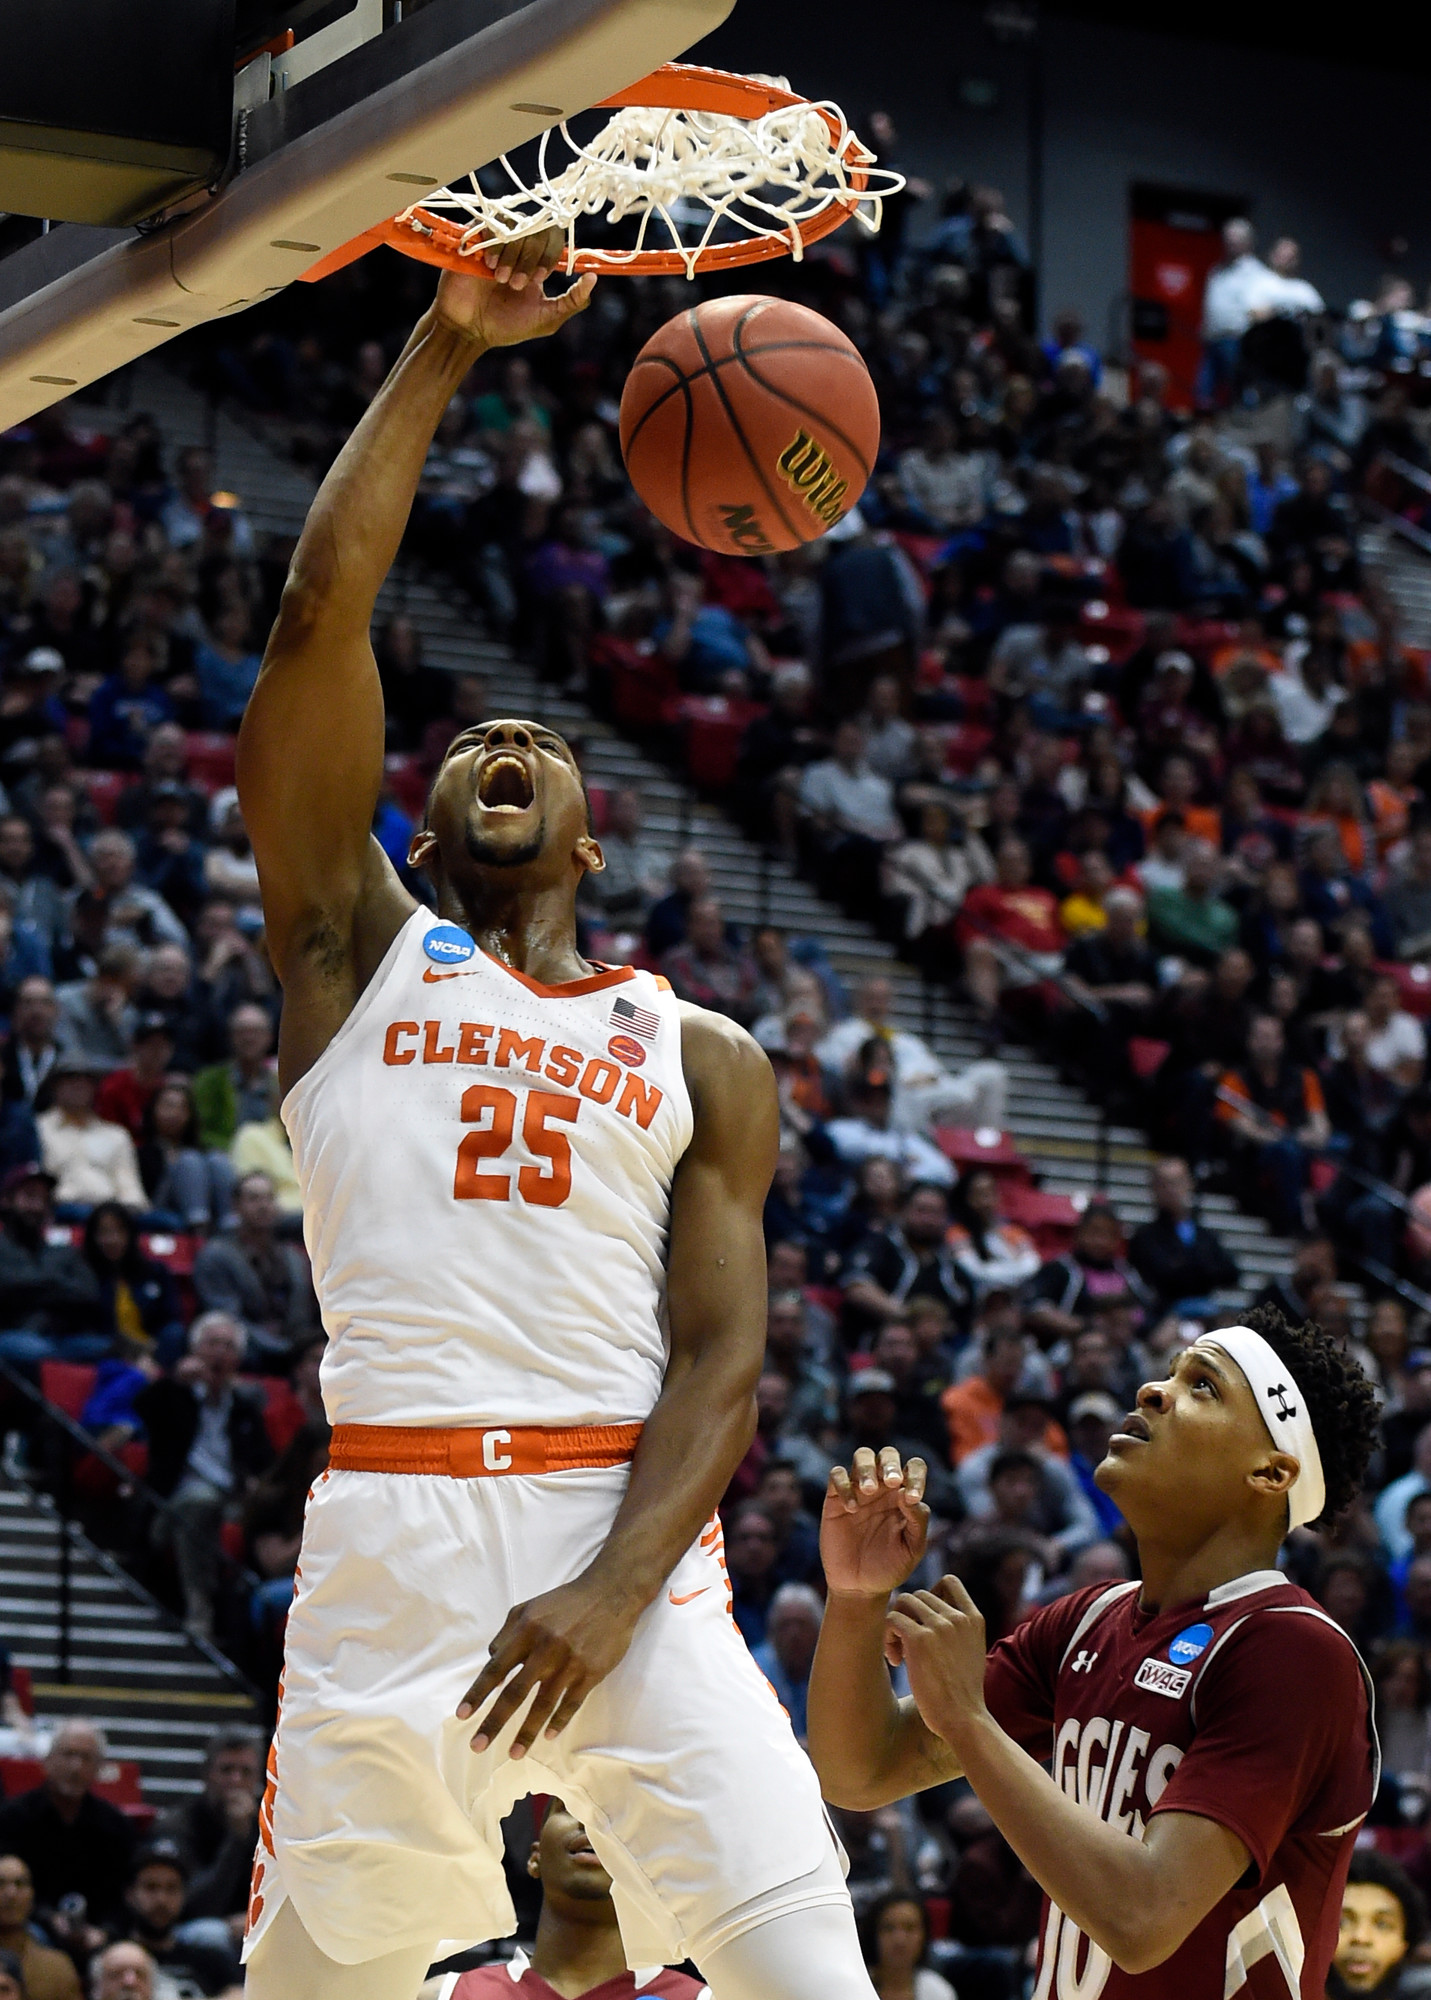 Clemson forward Aamir Simms (25) dunks on New Mexico State forward Jemerrio Jones (10) during the Tigers' 79-68 victory in a first-round game in the NCAA tournament on Friday in San Diego.